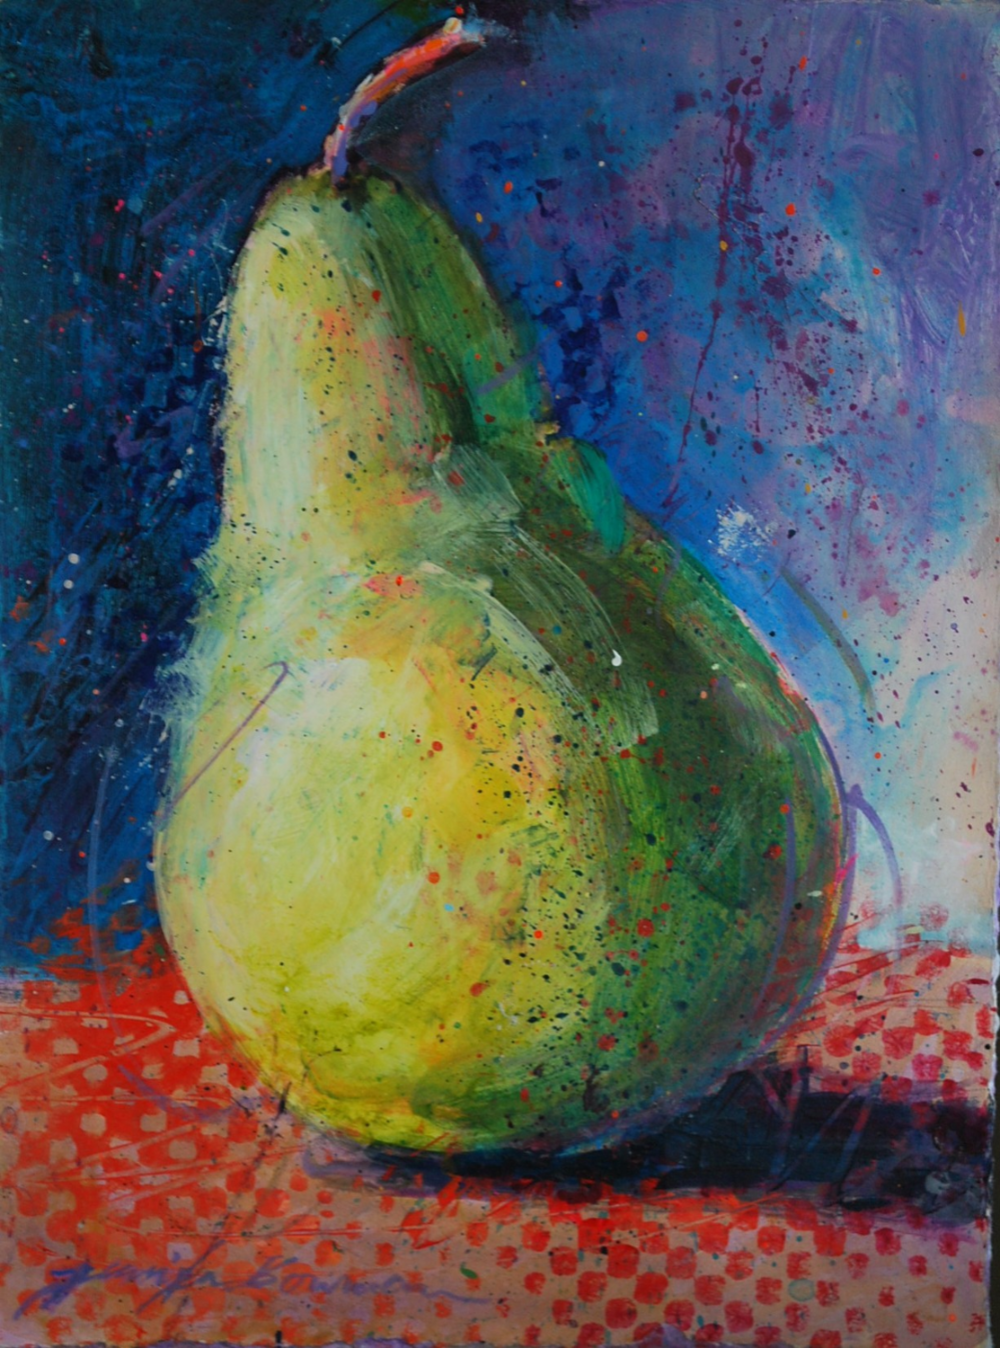 Pear_Try It Acrylics Example_Bowman.JPG